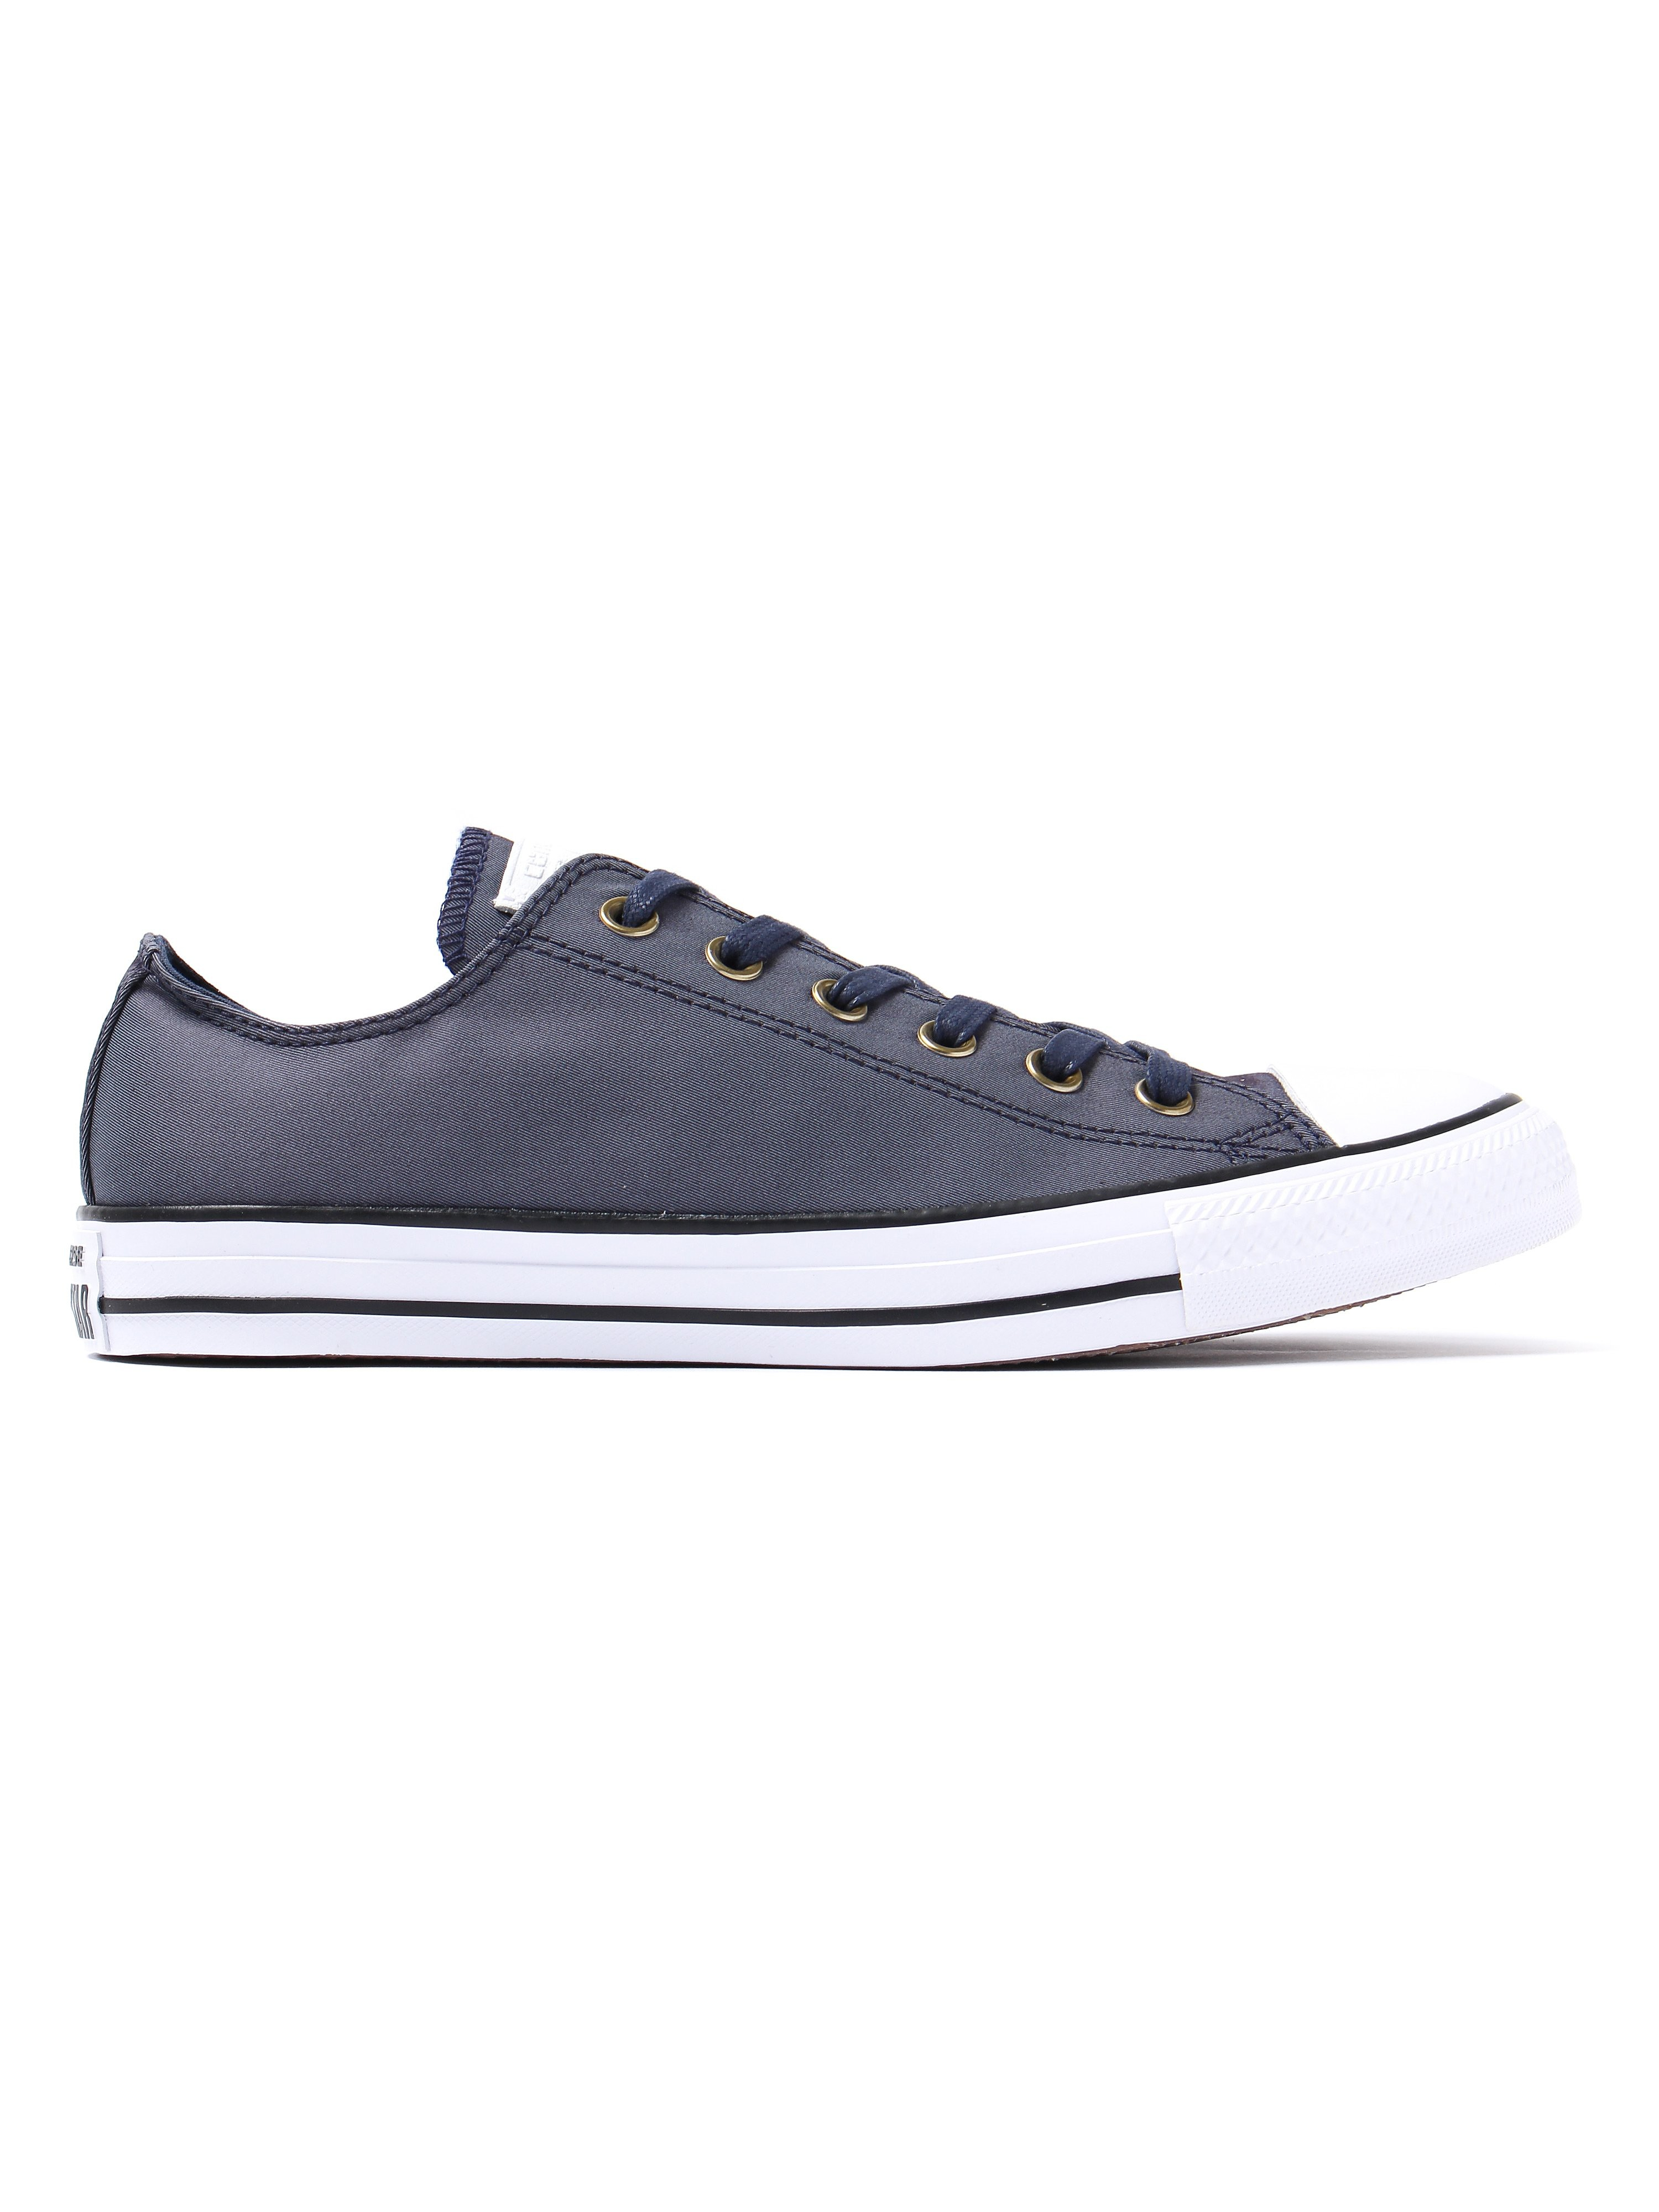 Converse Men's Chuck Taylor All Star OX